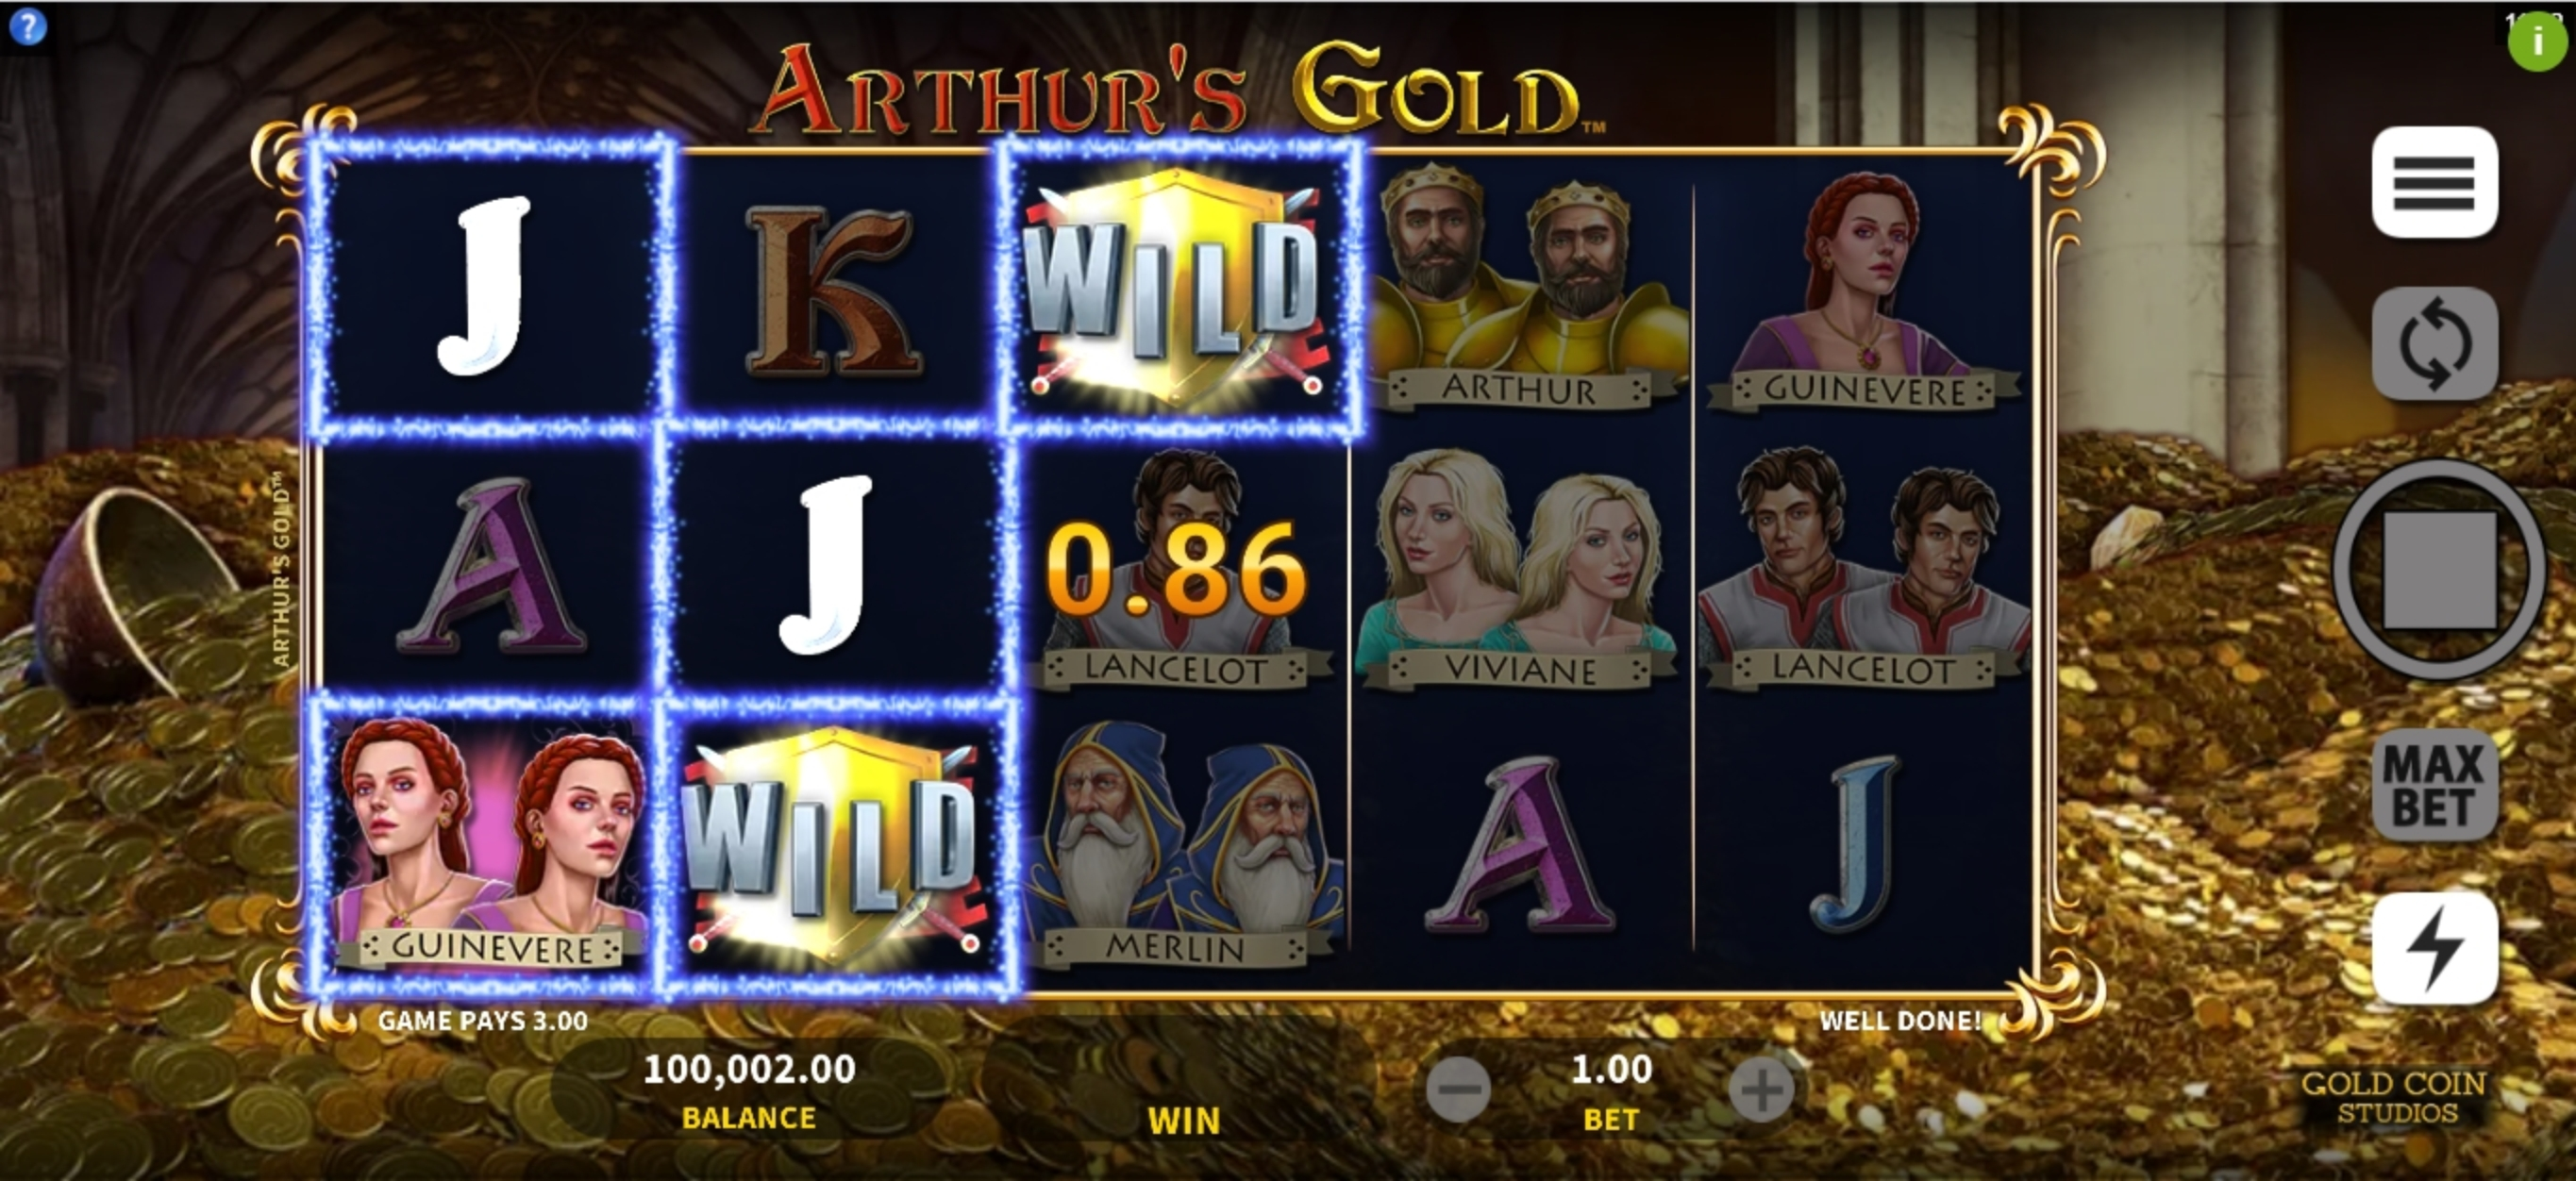 Win Money in Arthurs Gold Free Slot Game by Gold Coin Studios